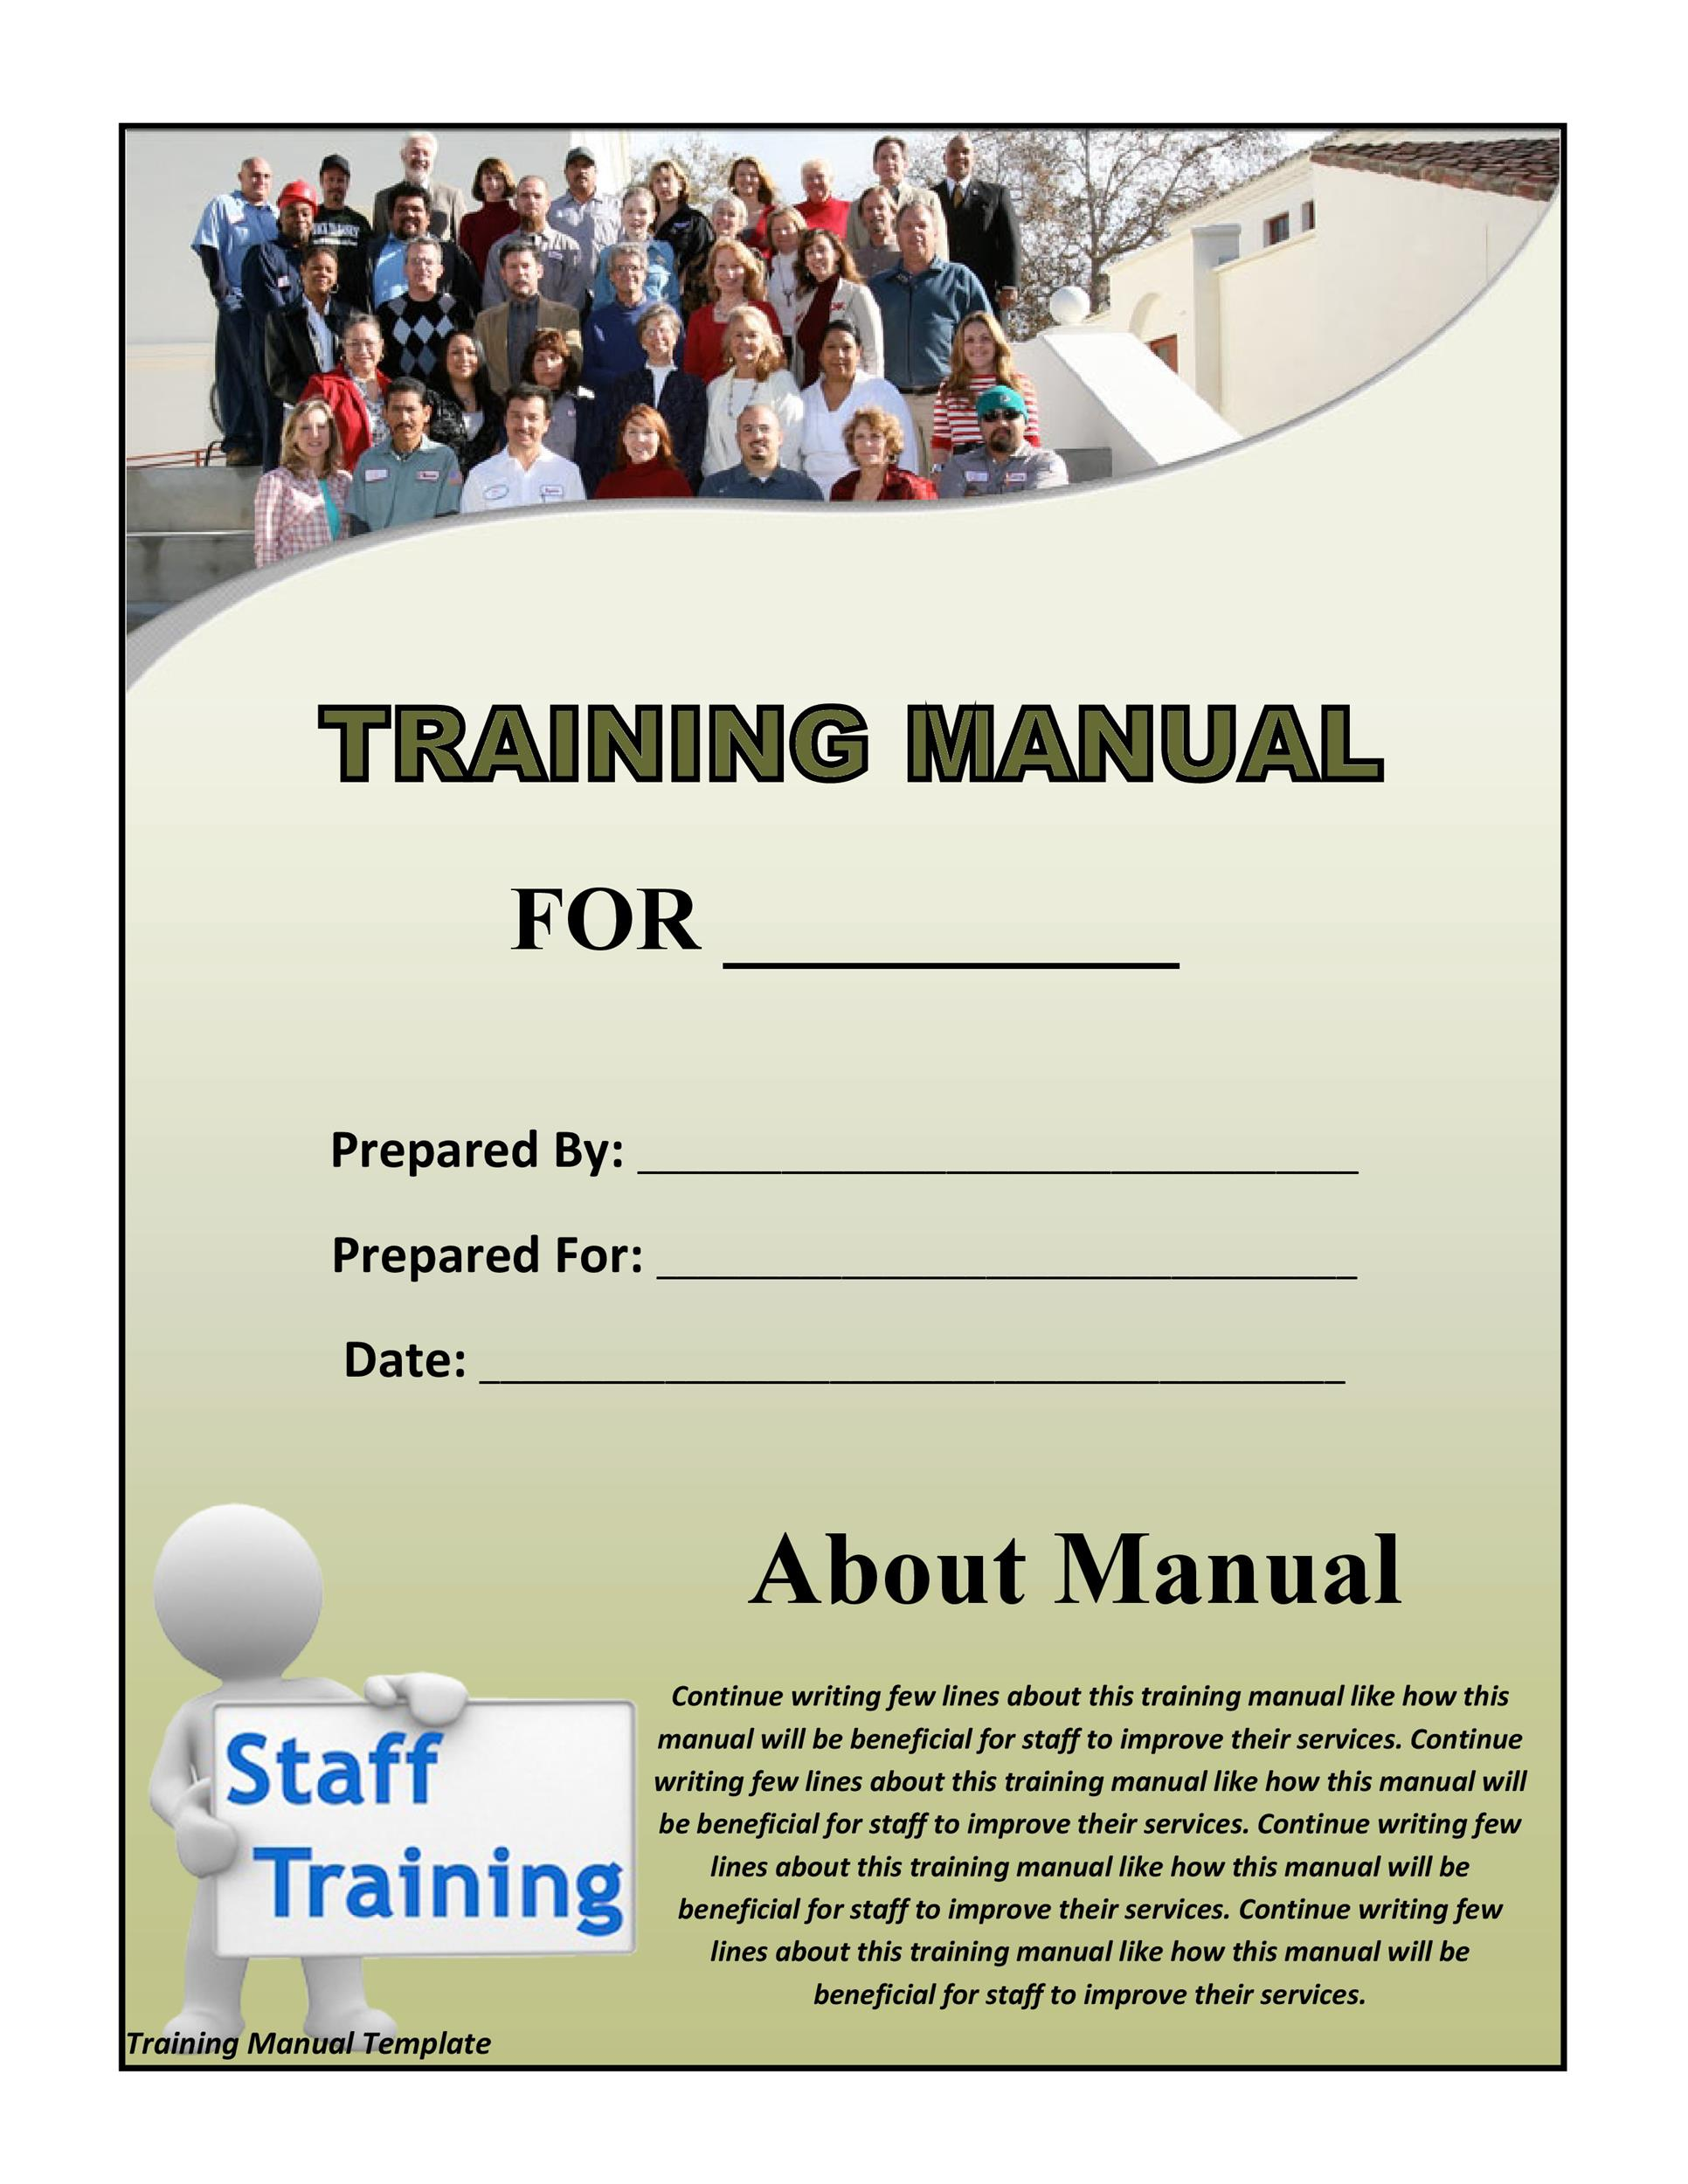 Staff training manual template gallery template design ideas for Staff training manual template